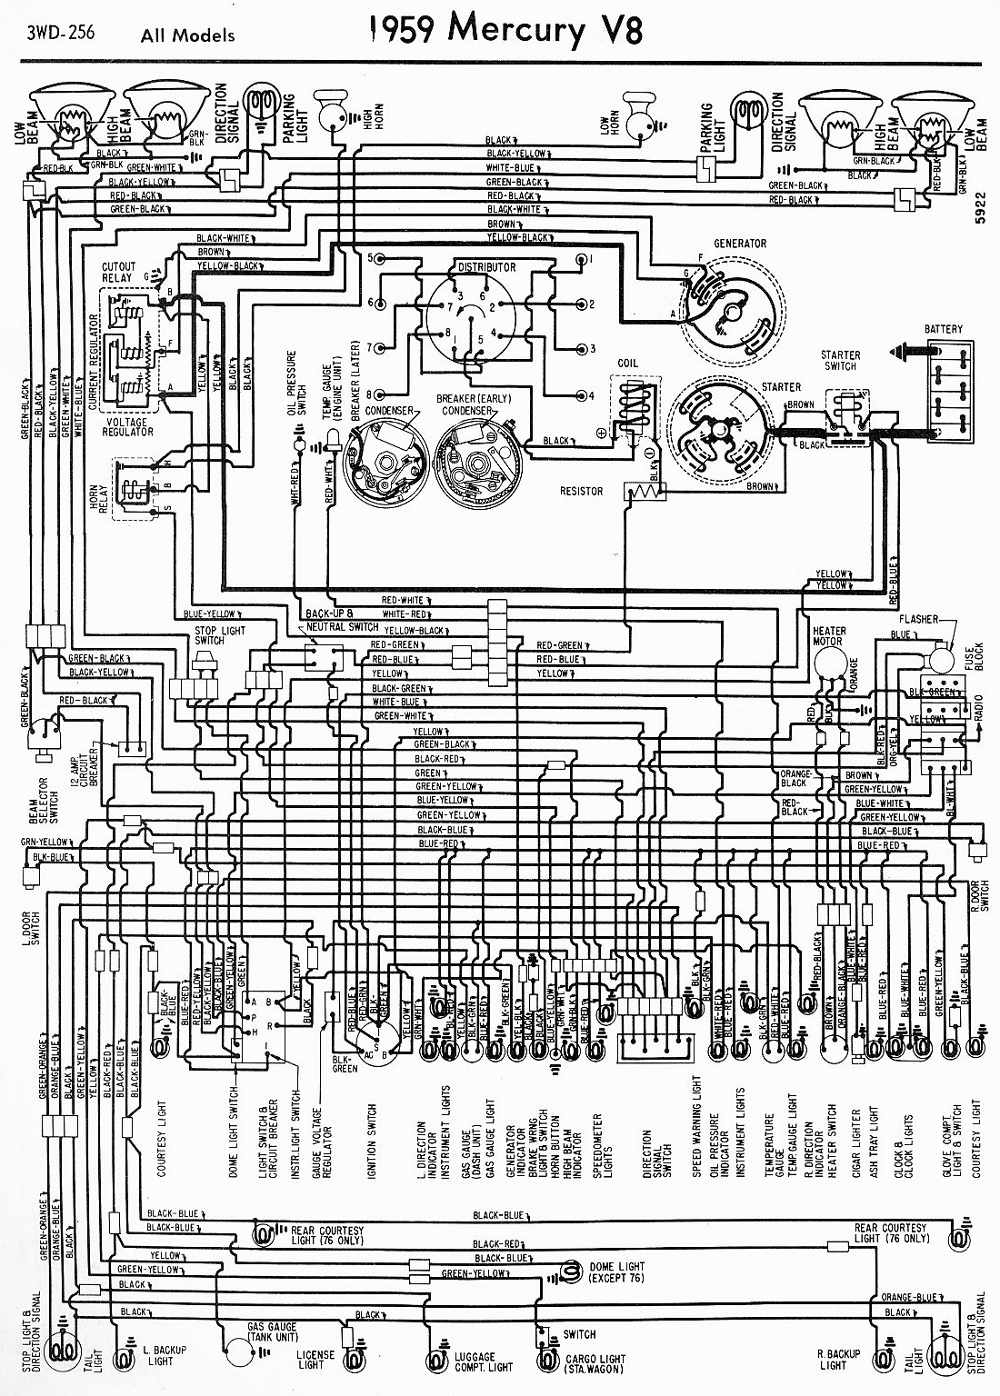 medium resolution of circuit wiring solution 1959 mercury v8 all models wiring diagram 1959 mercury v8 all models wiring